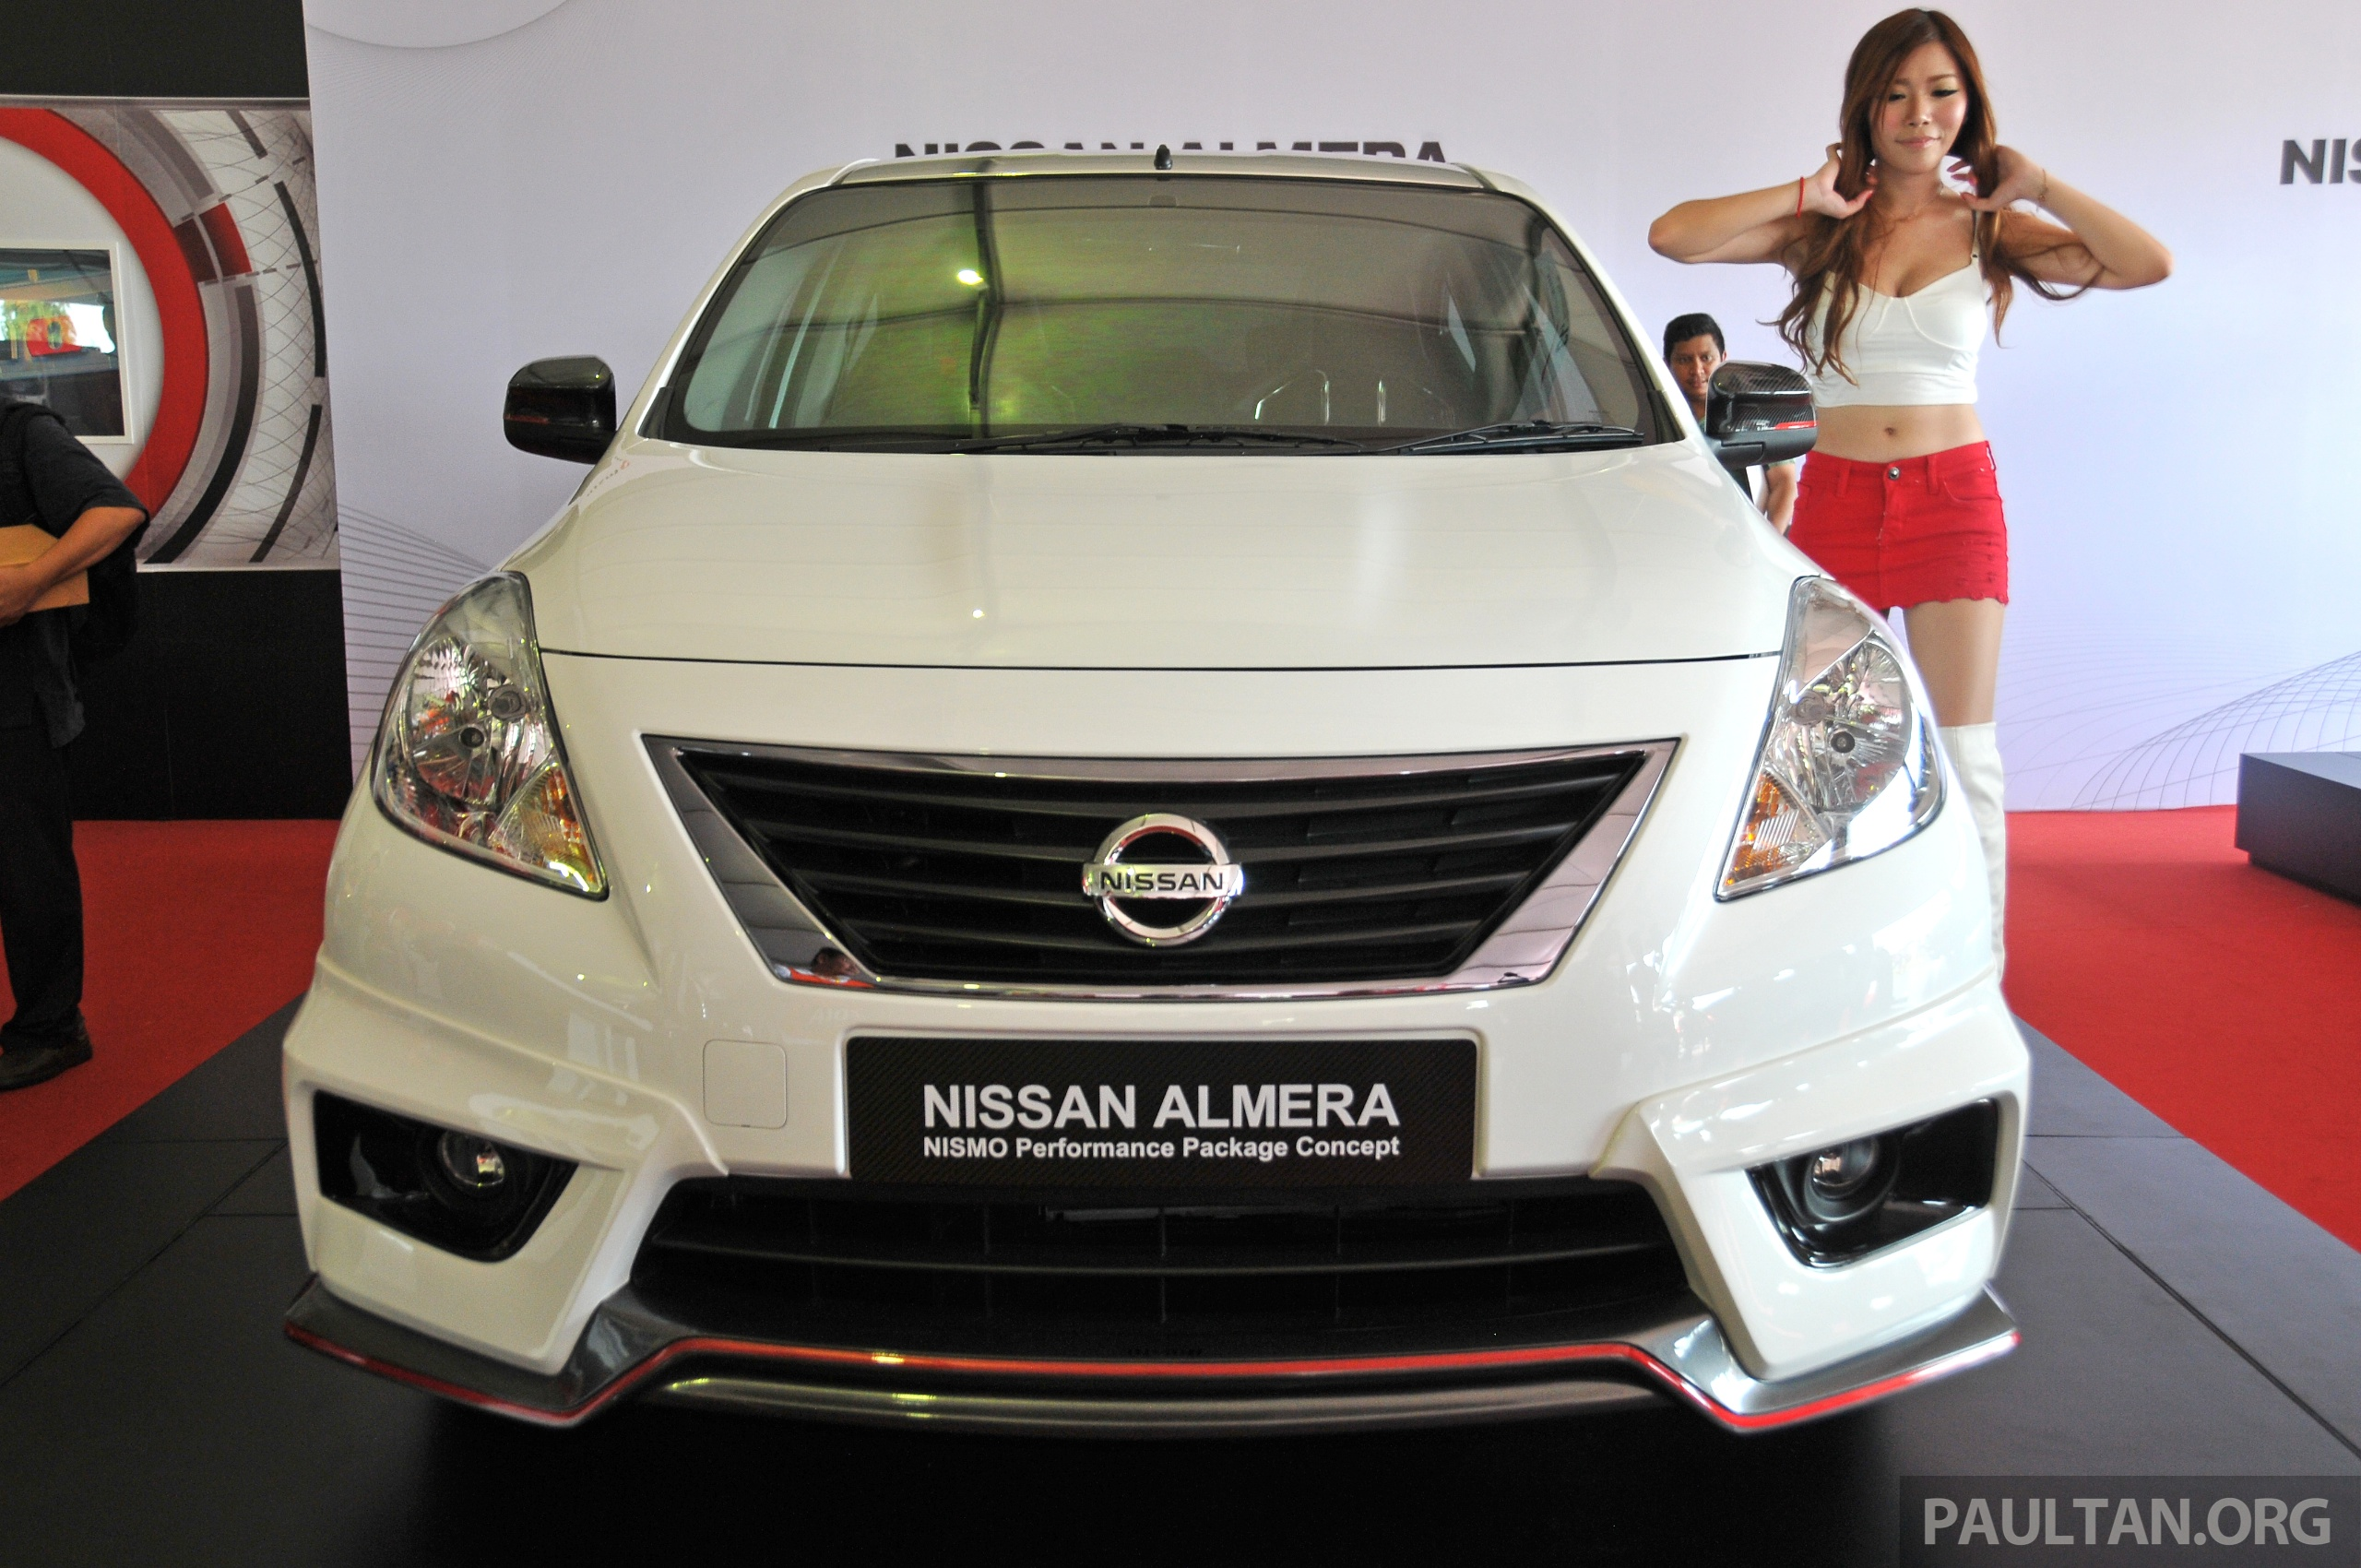 Nissan Almera Impul Bodykitnissan With Bodykit To Join Nismo Black Performance Package Concept